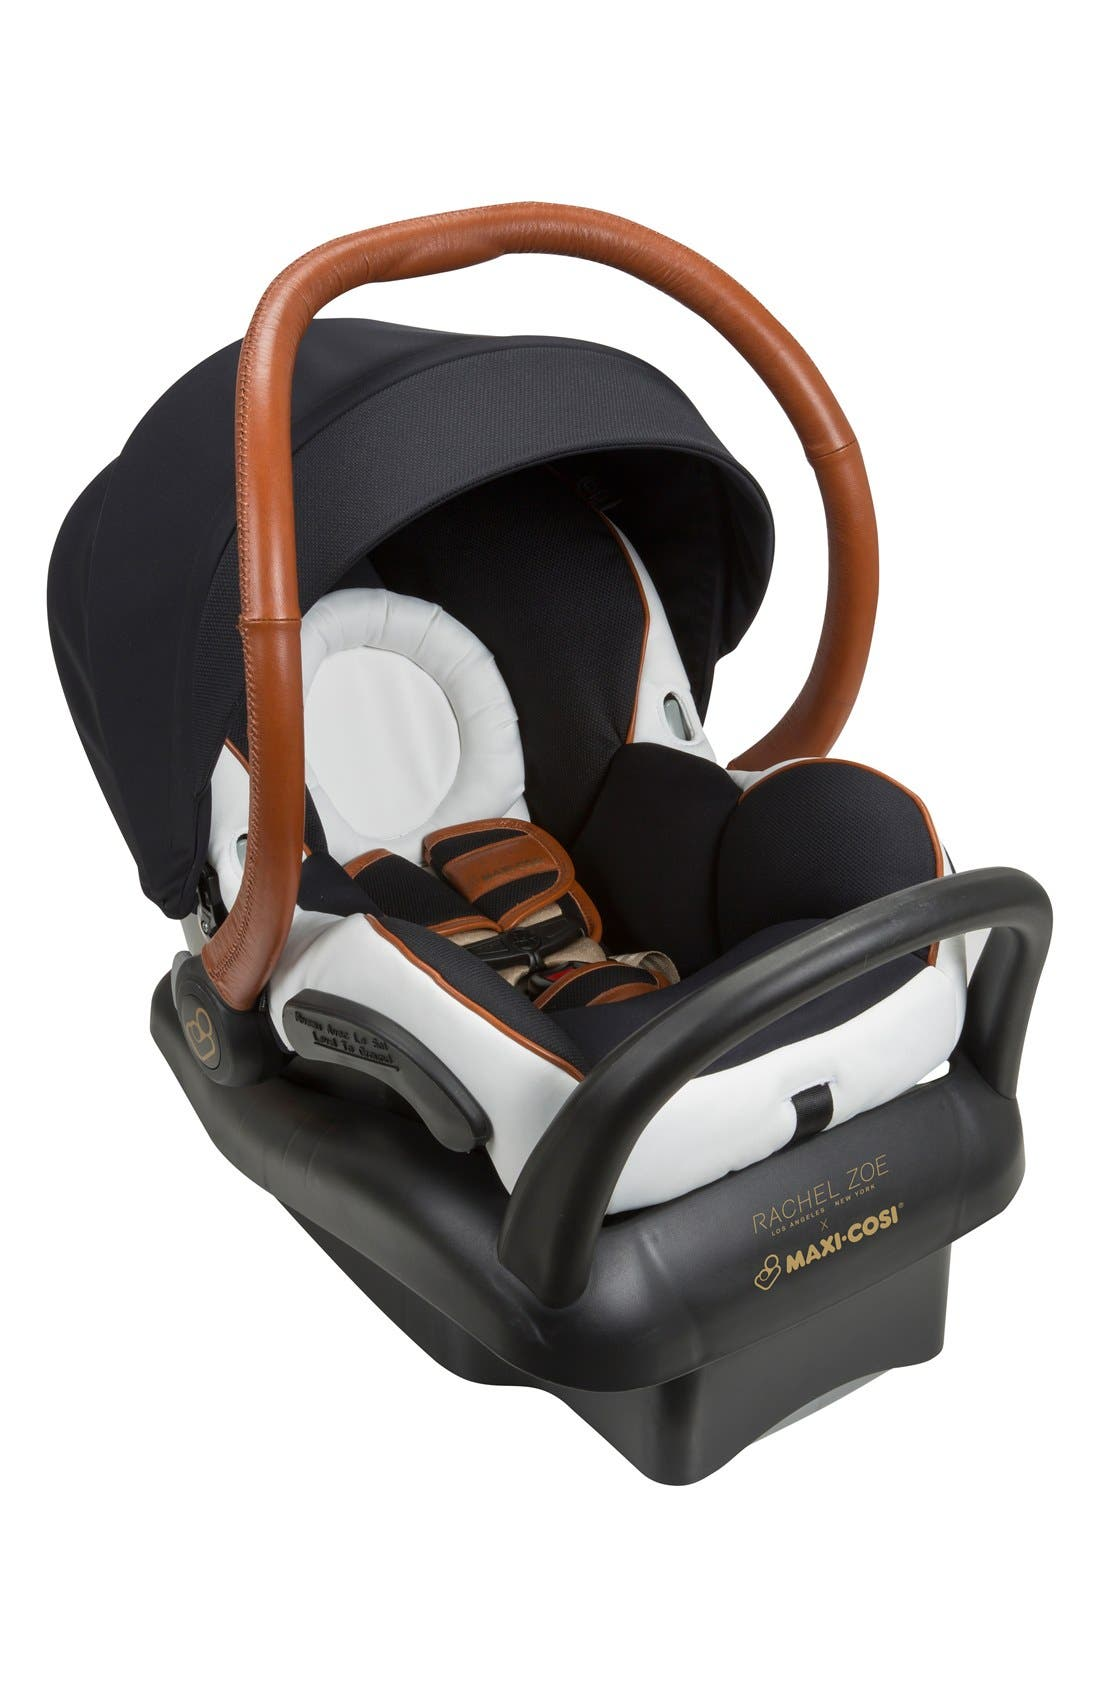 x Rachel Zoe Mico Max 30 - Special Edition Infant Car Seat,                             Alternate thumbnail 8, color,                             Black/ White